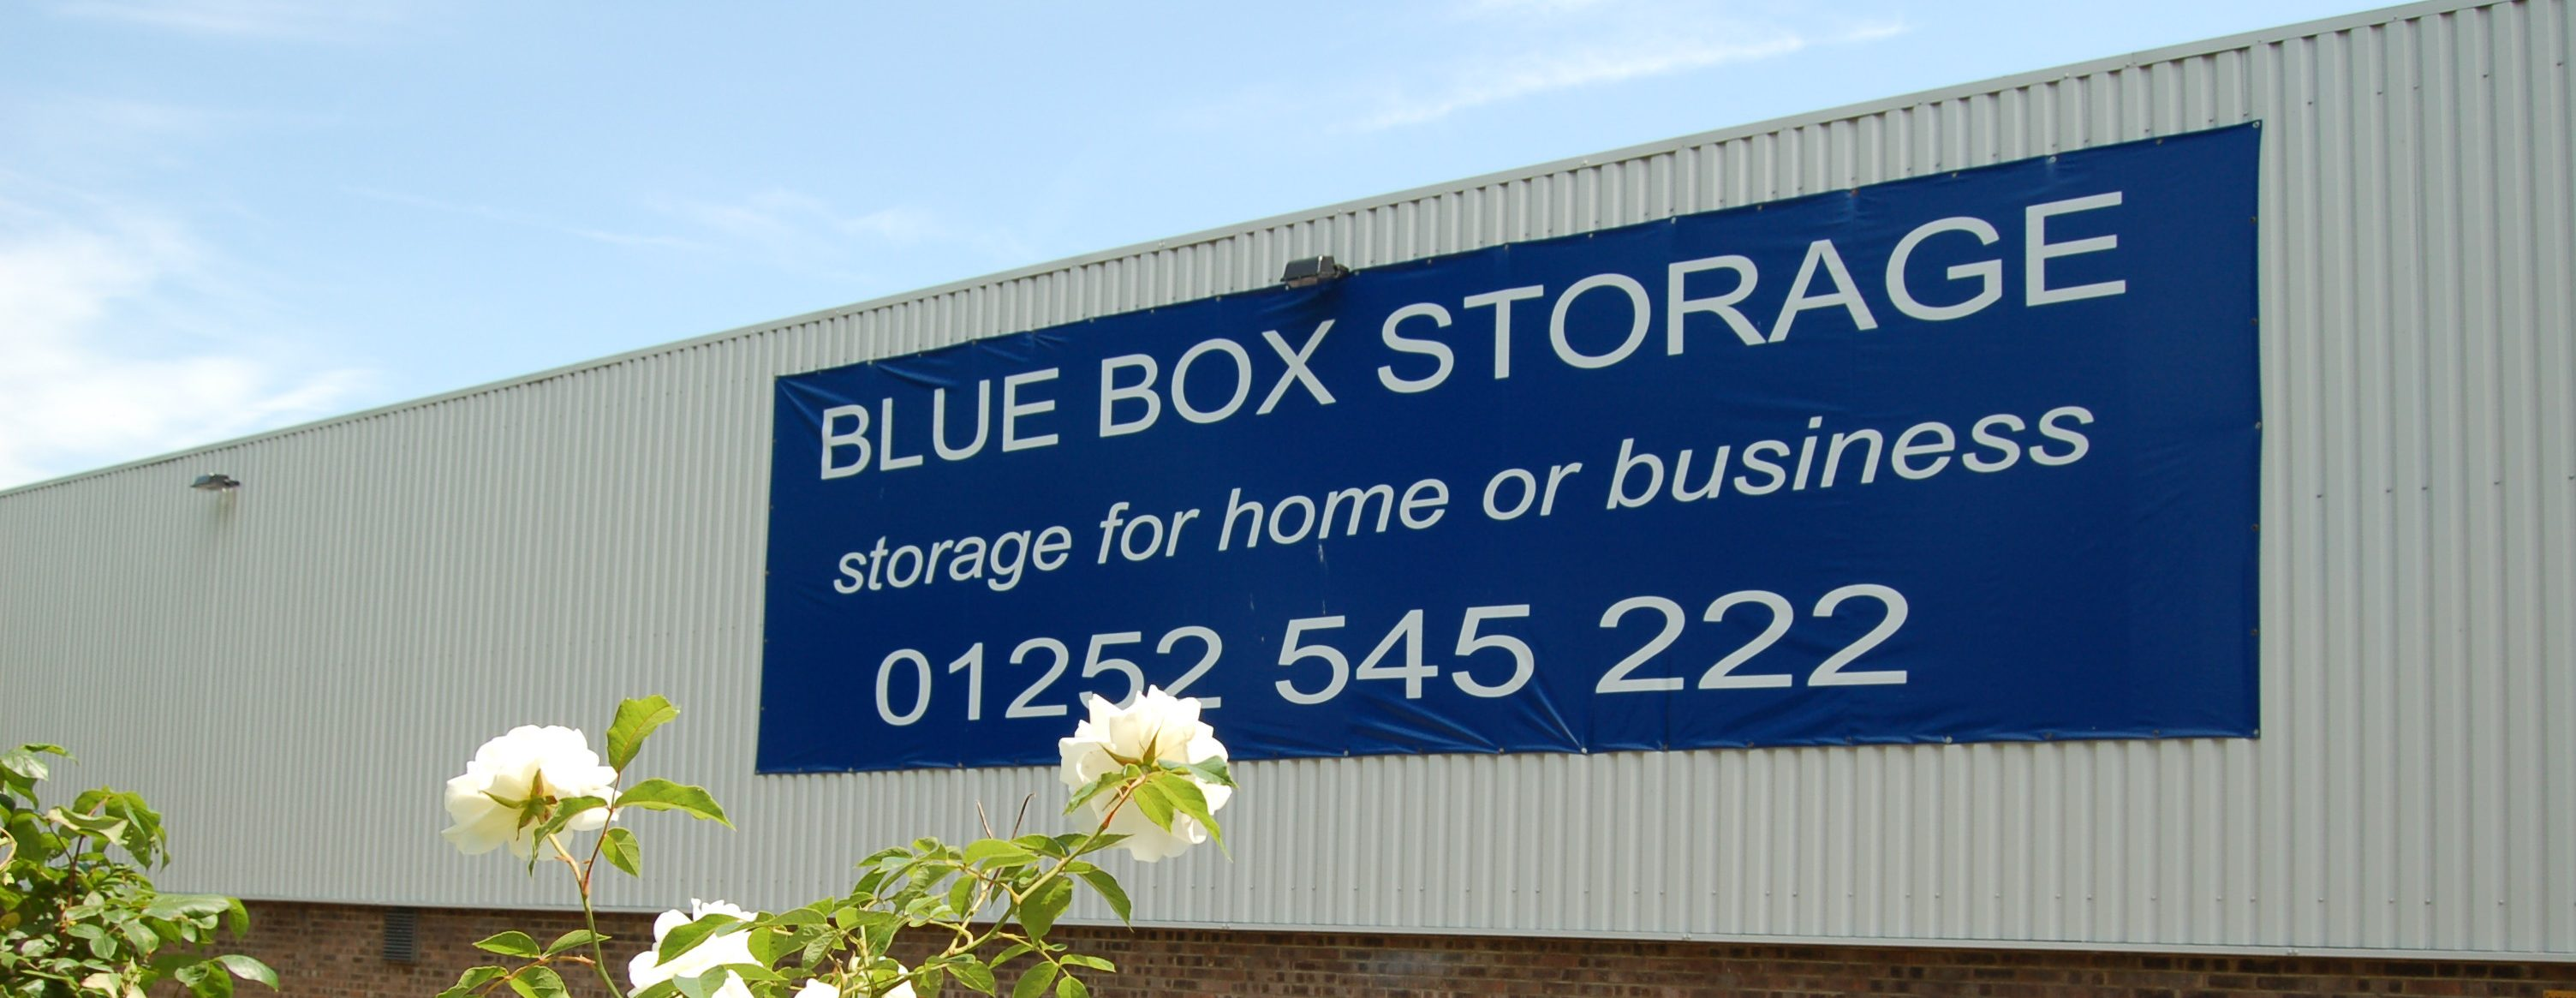 All About Blue Box Self Storage